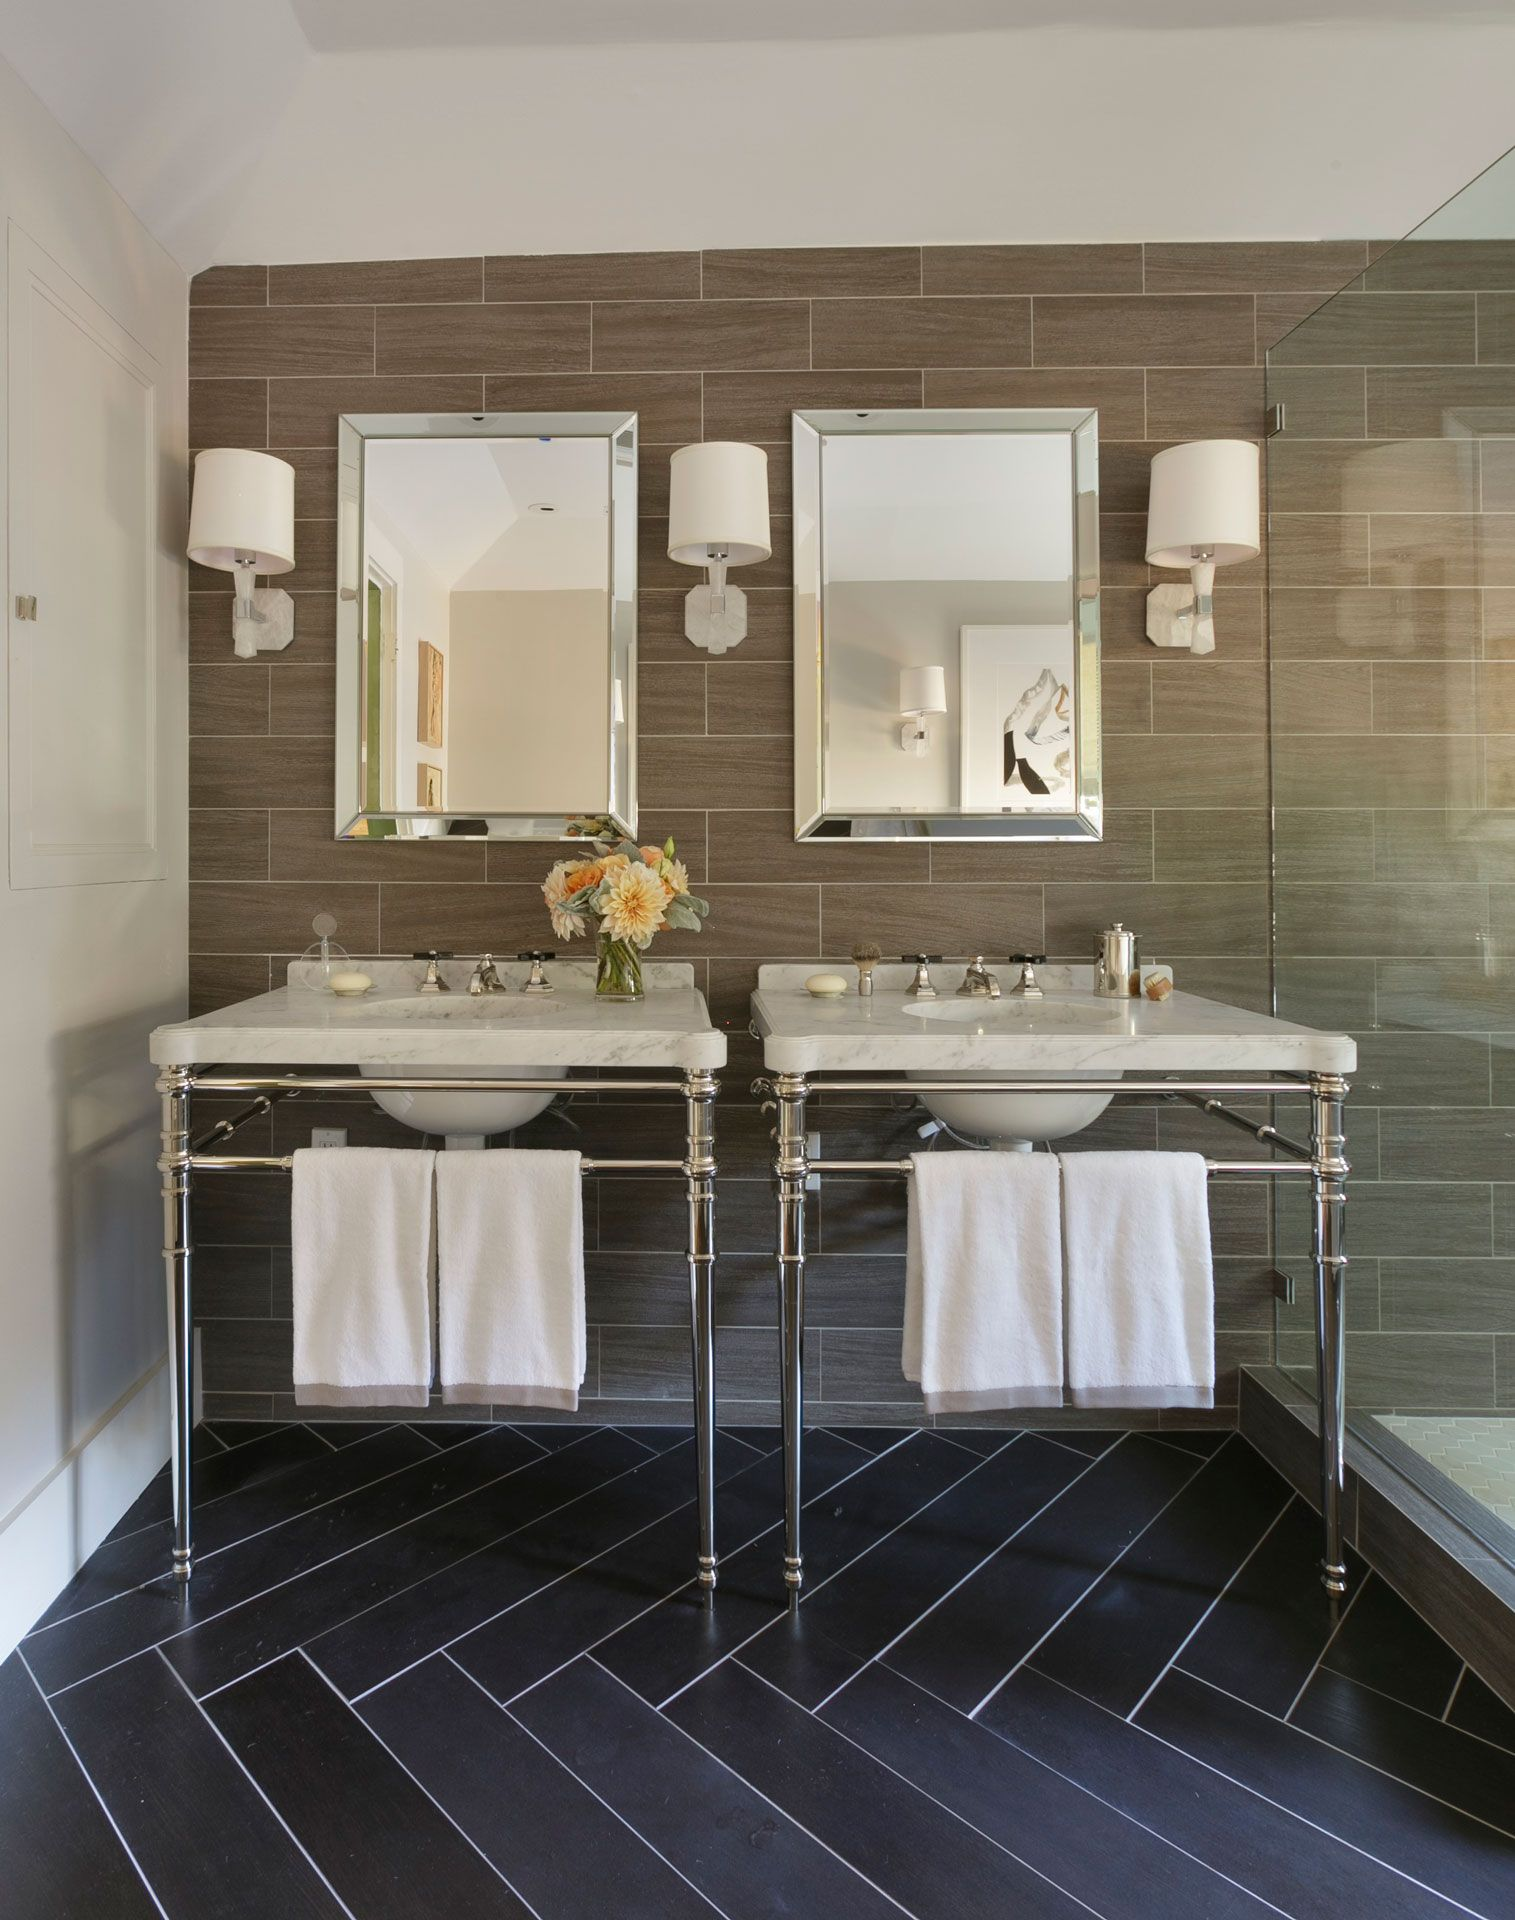 30 floor tile designs for every corner of your home Interior tile floor designs